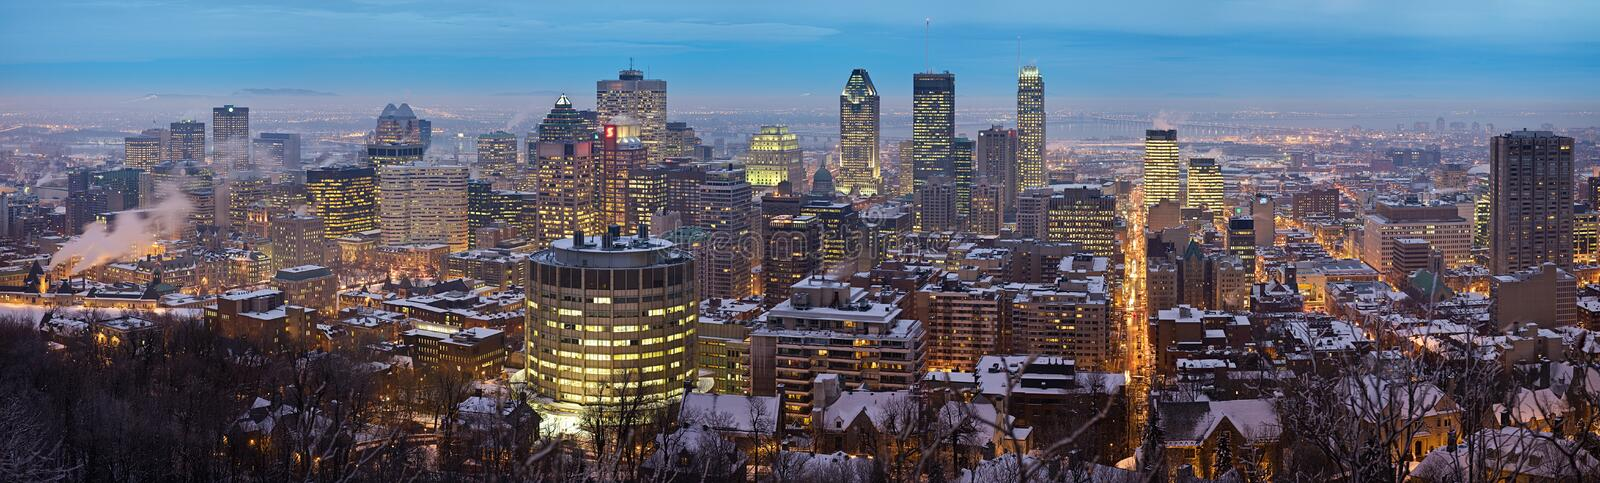 Panoramic view of the Montreal skyline royalty free stock images